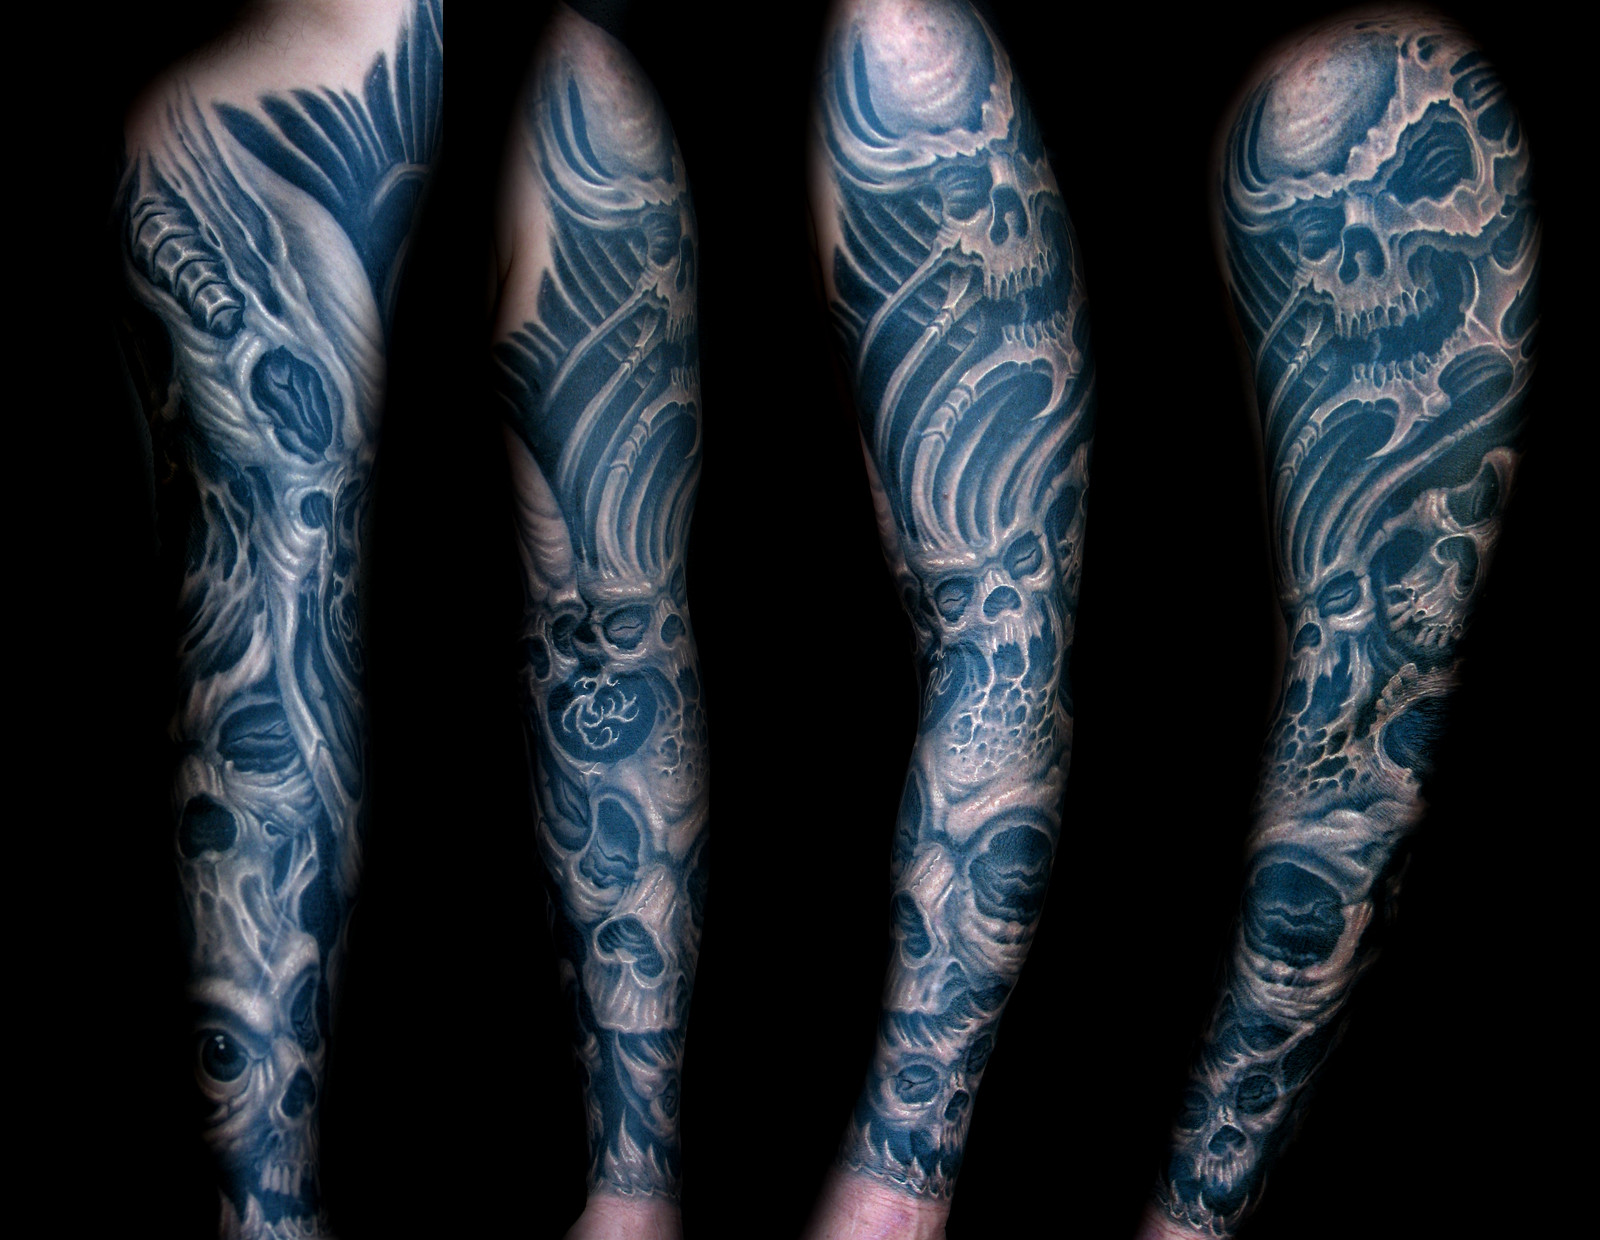 a7c2860f33a27 biomech-skull-tattoos-sleeve-joe-riley-best-las-vegas-tattoo -shops-artists-inner-visions-tattoo-henderson.jpg